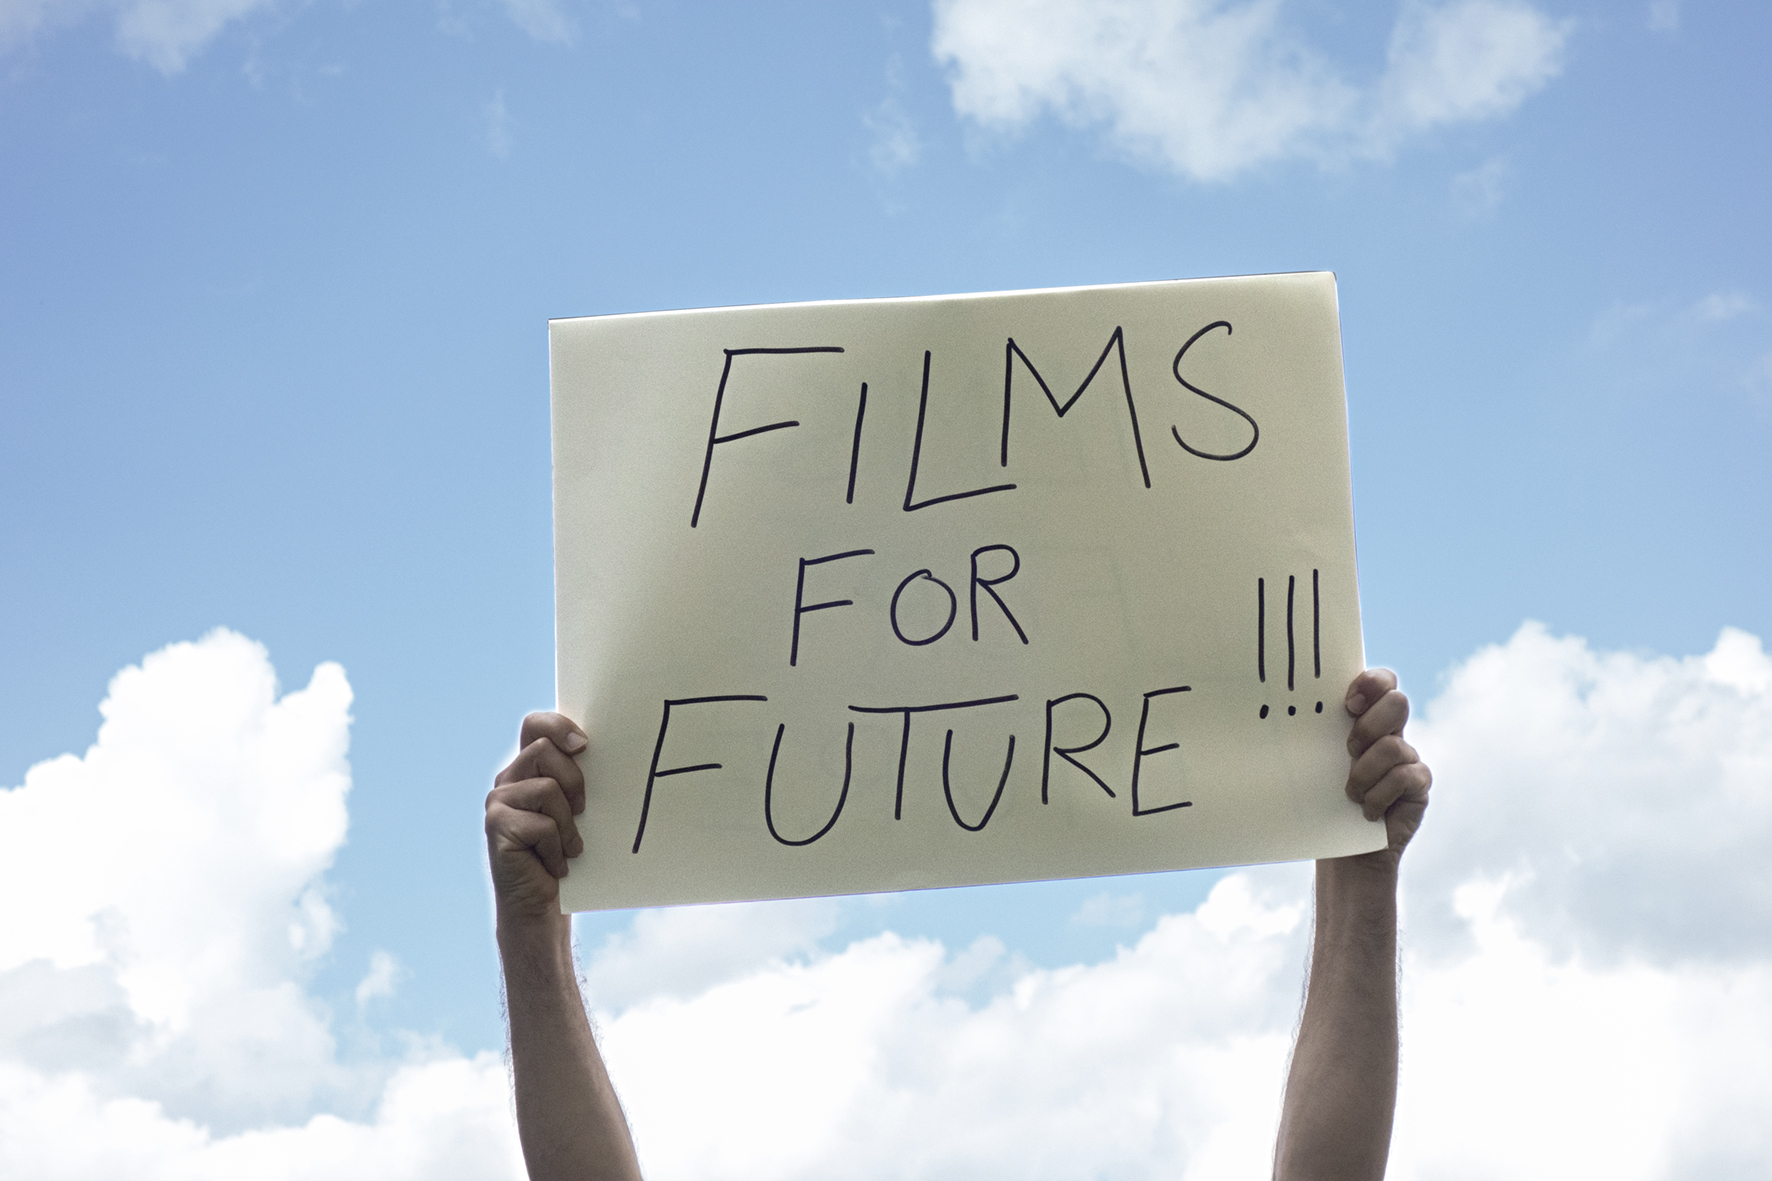 Filmcamp for Future